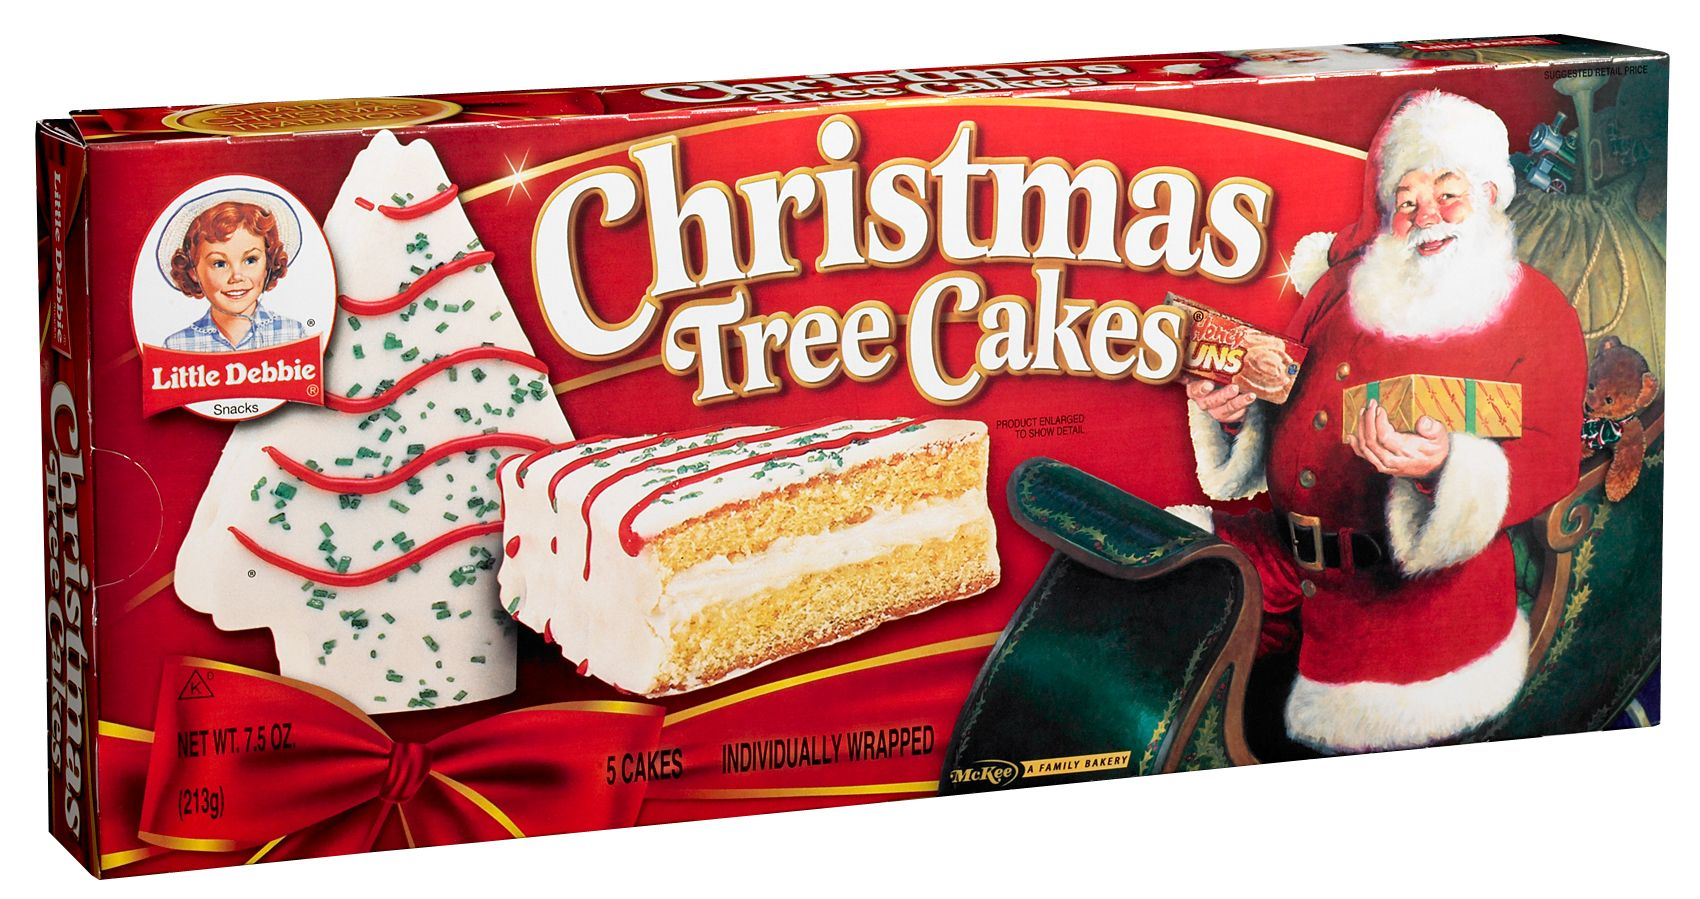 Little Debbie Copycat Recipes To Make At Home   Christmas tree cake, Tree cakes, Little debbie ...